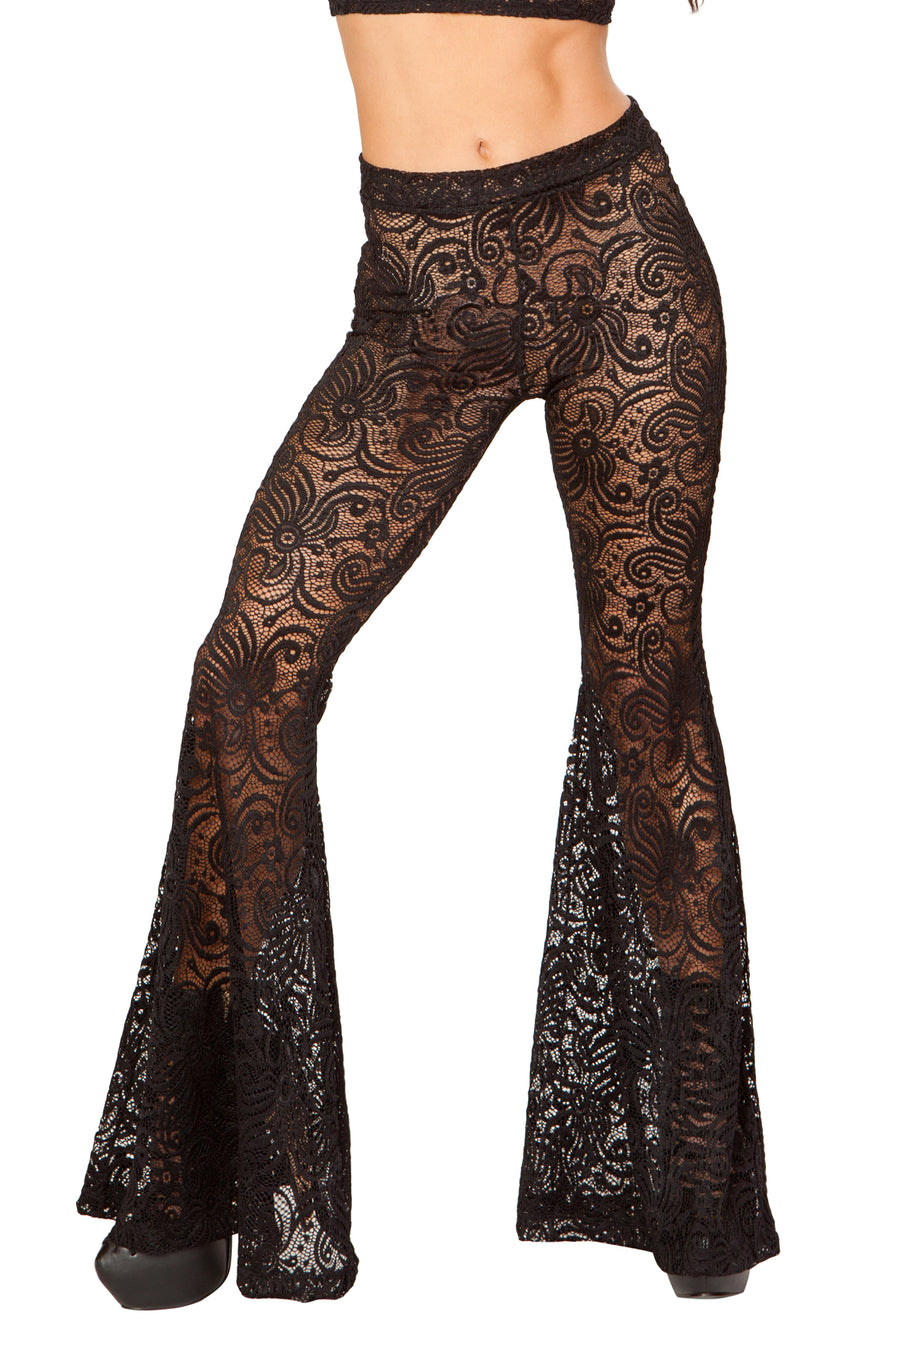 Black Cyclone Lace Bell Bottom Pant - FireFly Volume 3, J Valentine - YourLamode